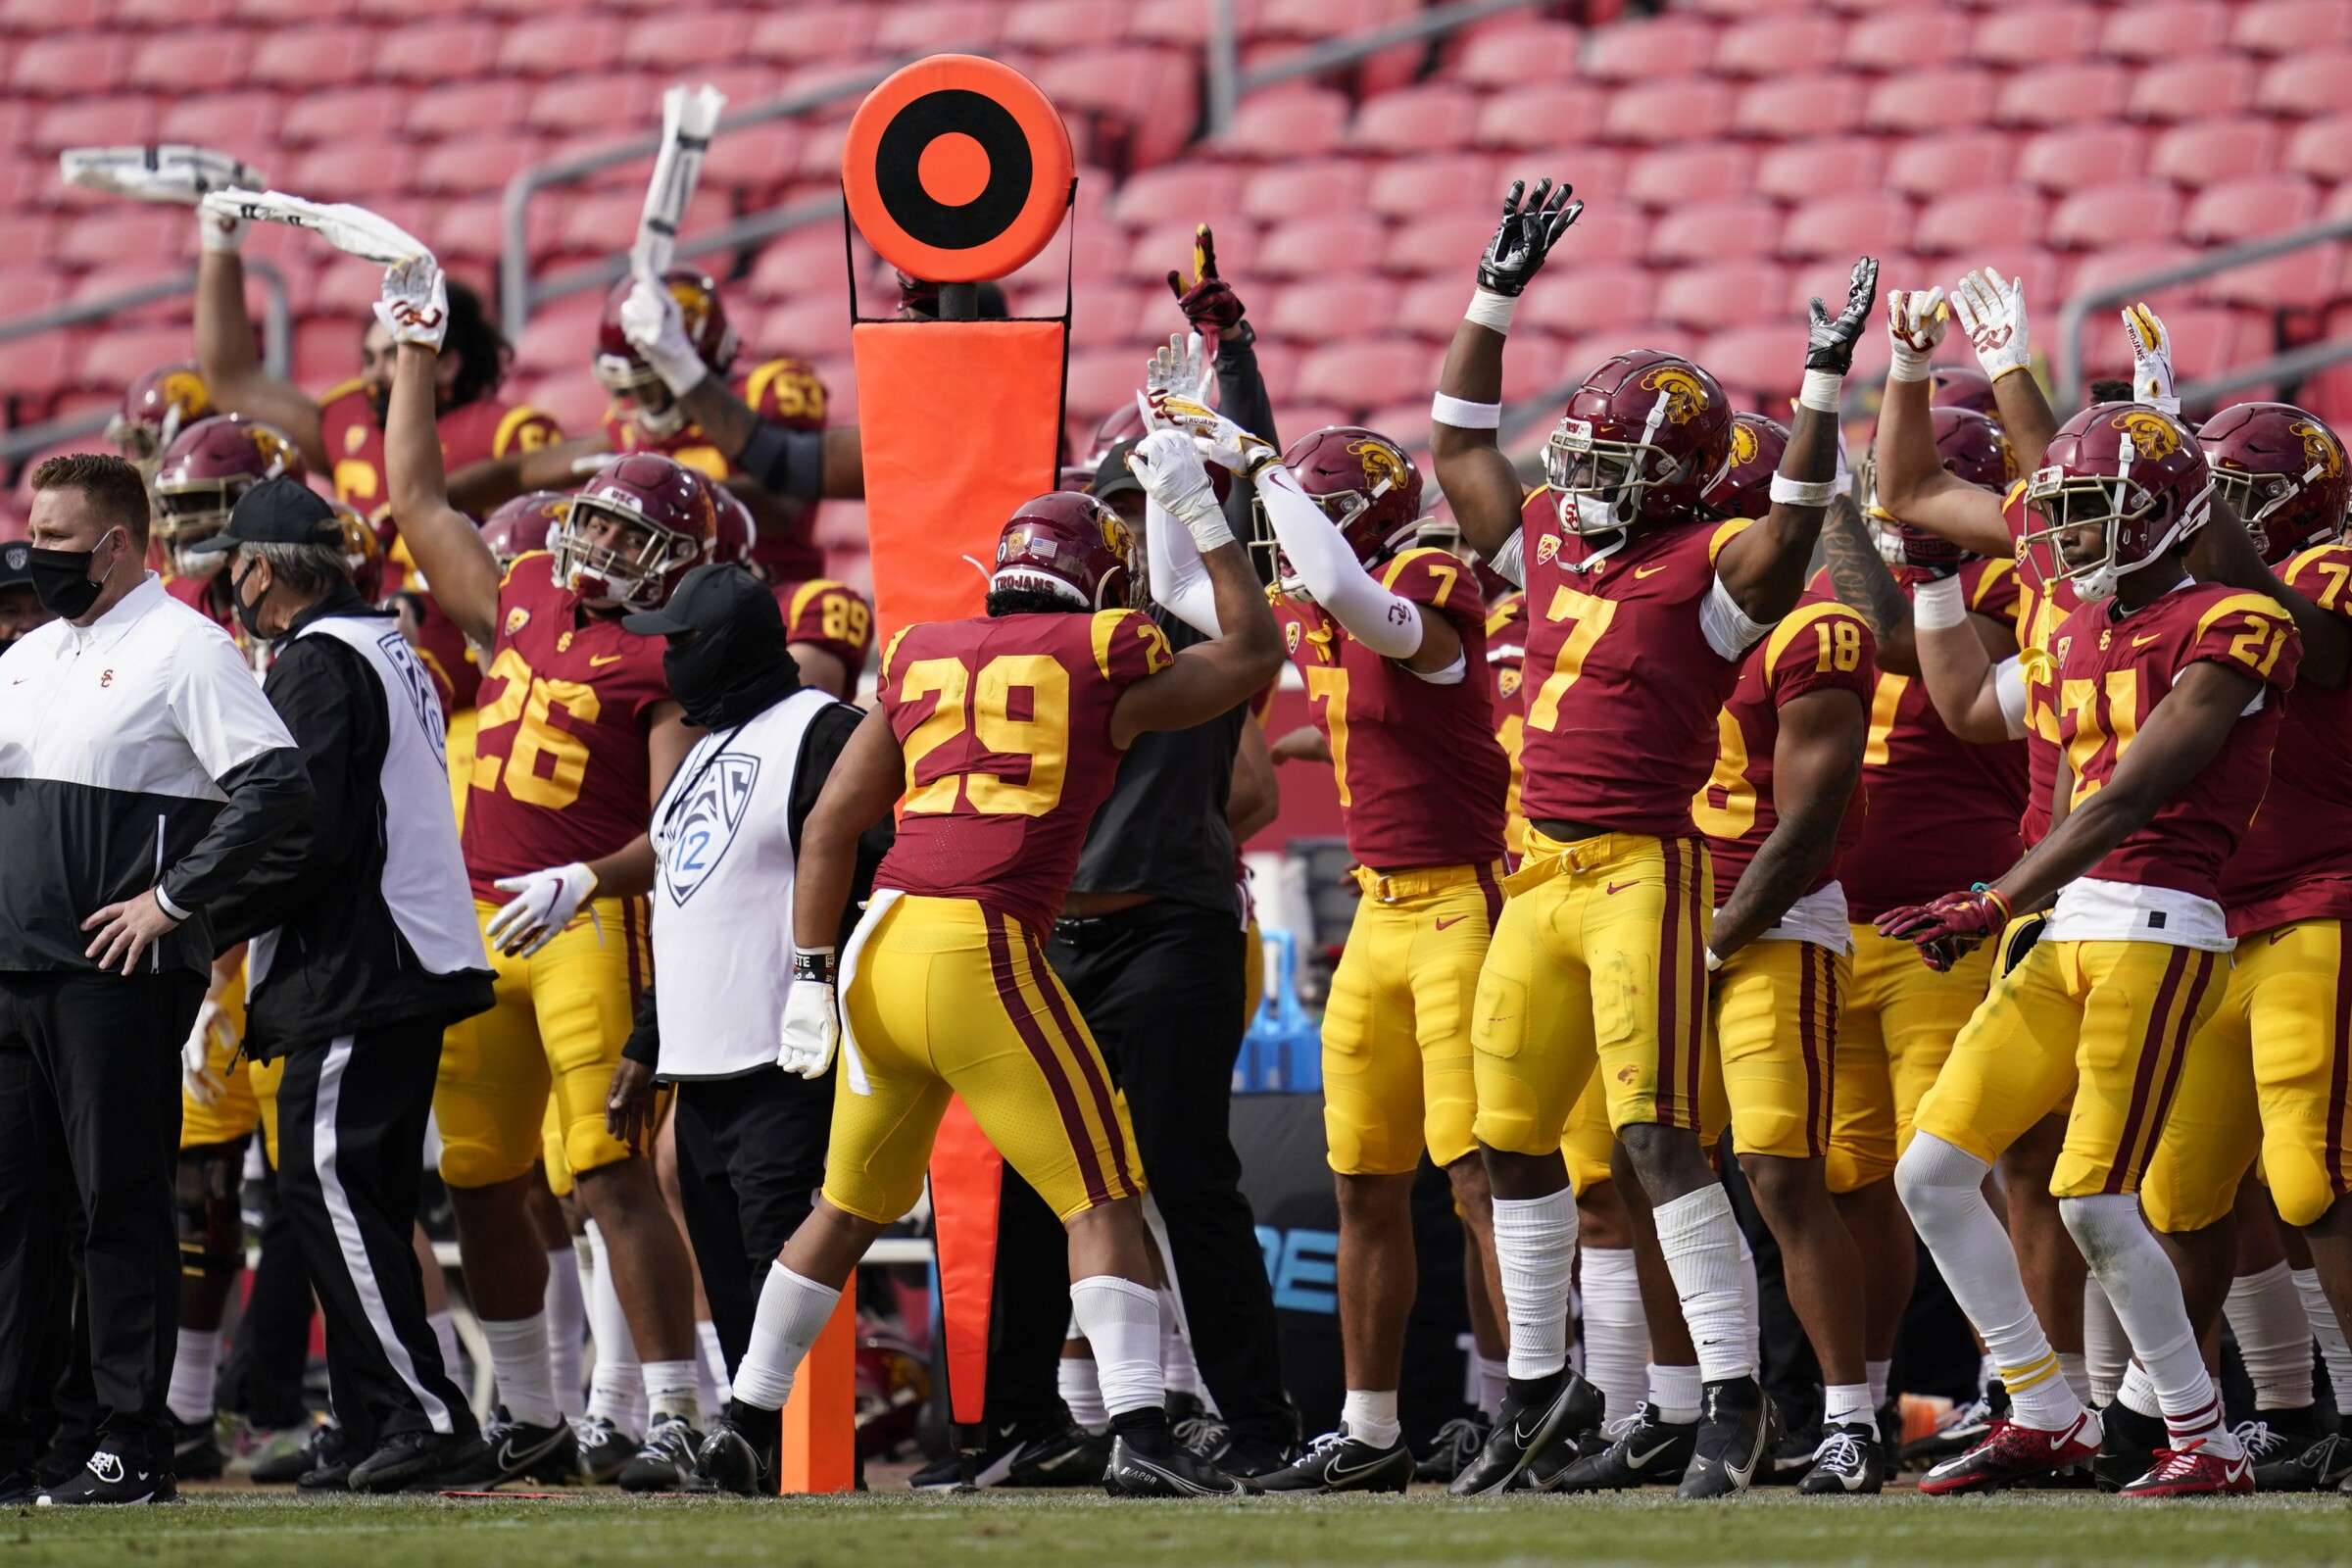 USC players celebrate on the sideline during the second half of the Trojans' 28-27 win over Arizona State on Saturday.